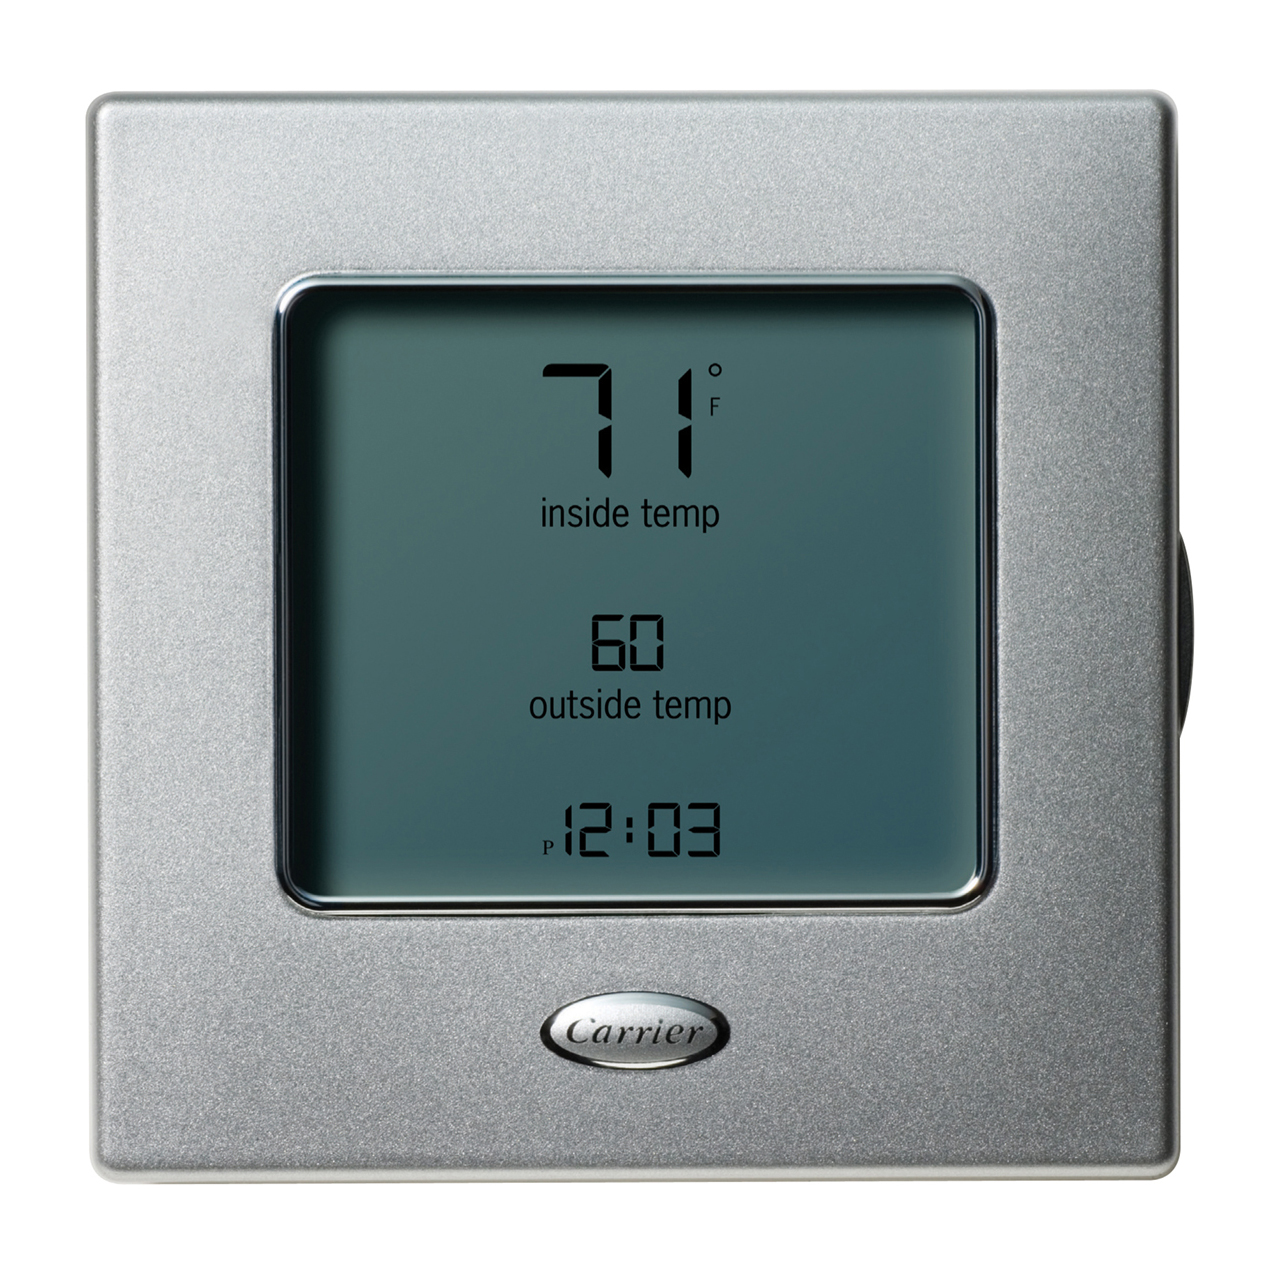 carrier-33CS2PP2S-03-non-communicating-programmable-thermostat